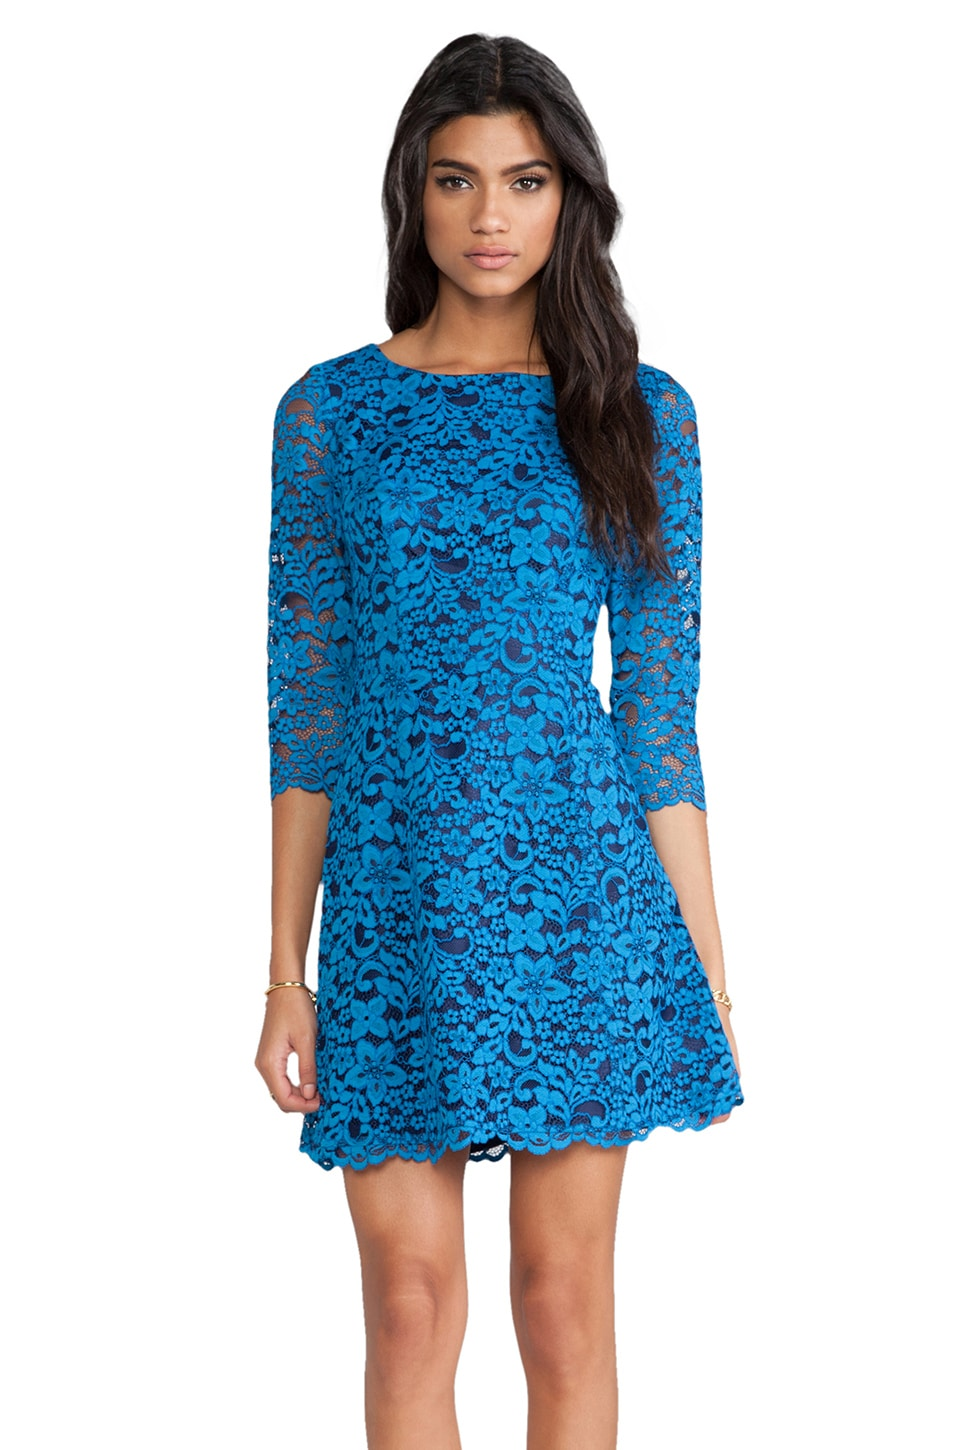 Shoshanna Celestial Lace Miranda Dress in Celestial Blue/Midnight